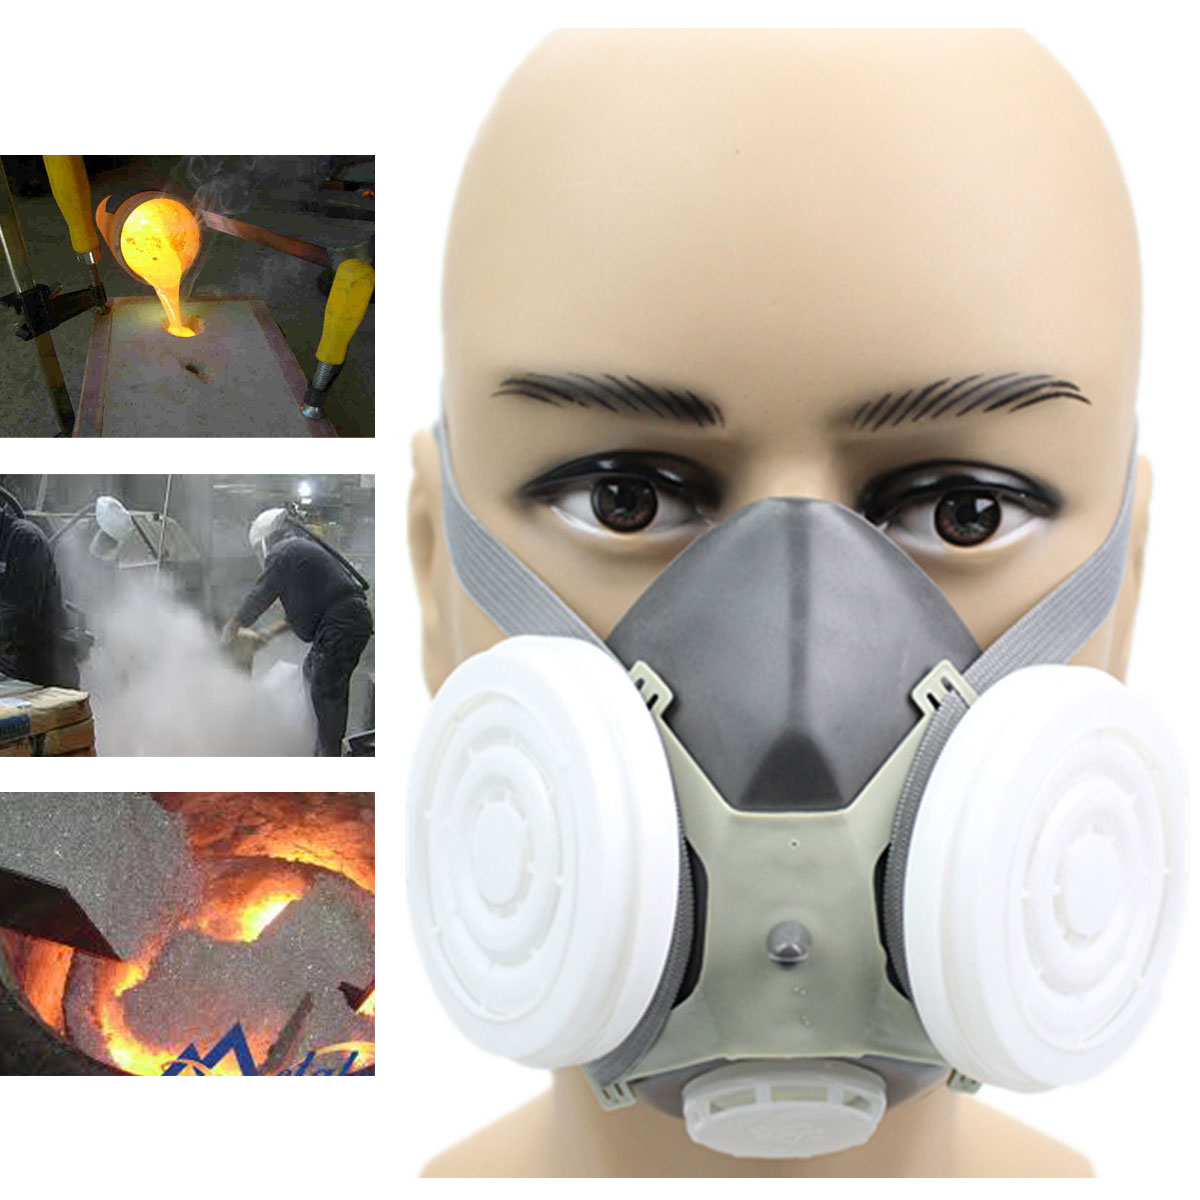 Dust Mask Protection Gas Mask Industrial Anti Dust Face Mask Filter Respirator Suit Industry Spraying Safety For Cycling 11 in 1 suit 3m 6200 half face mask with 2091 industry paint spray work respirator mask anti dust respirator fliters